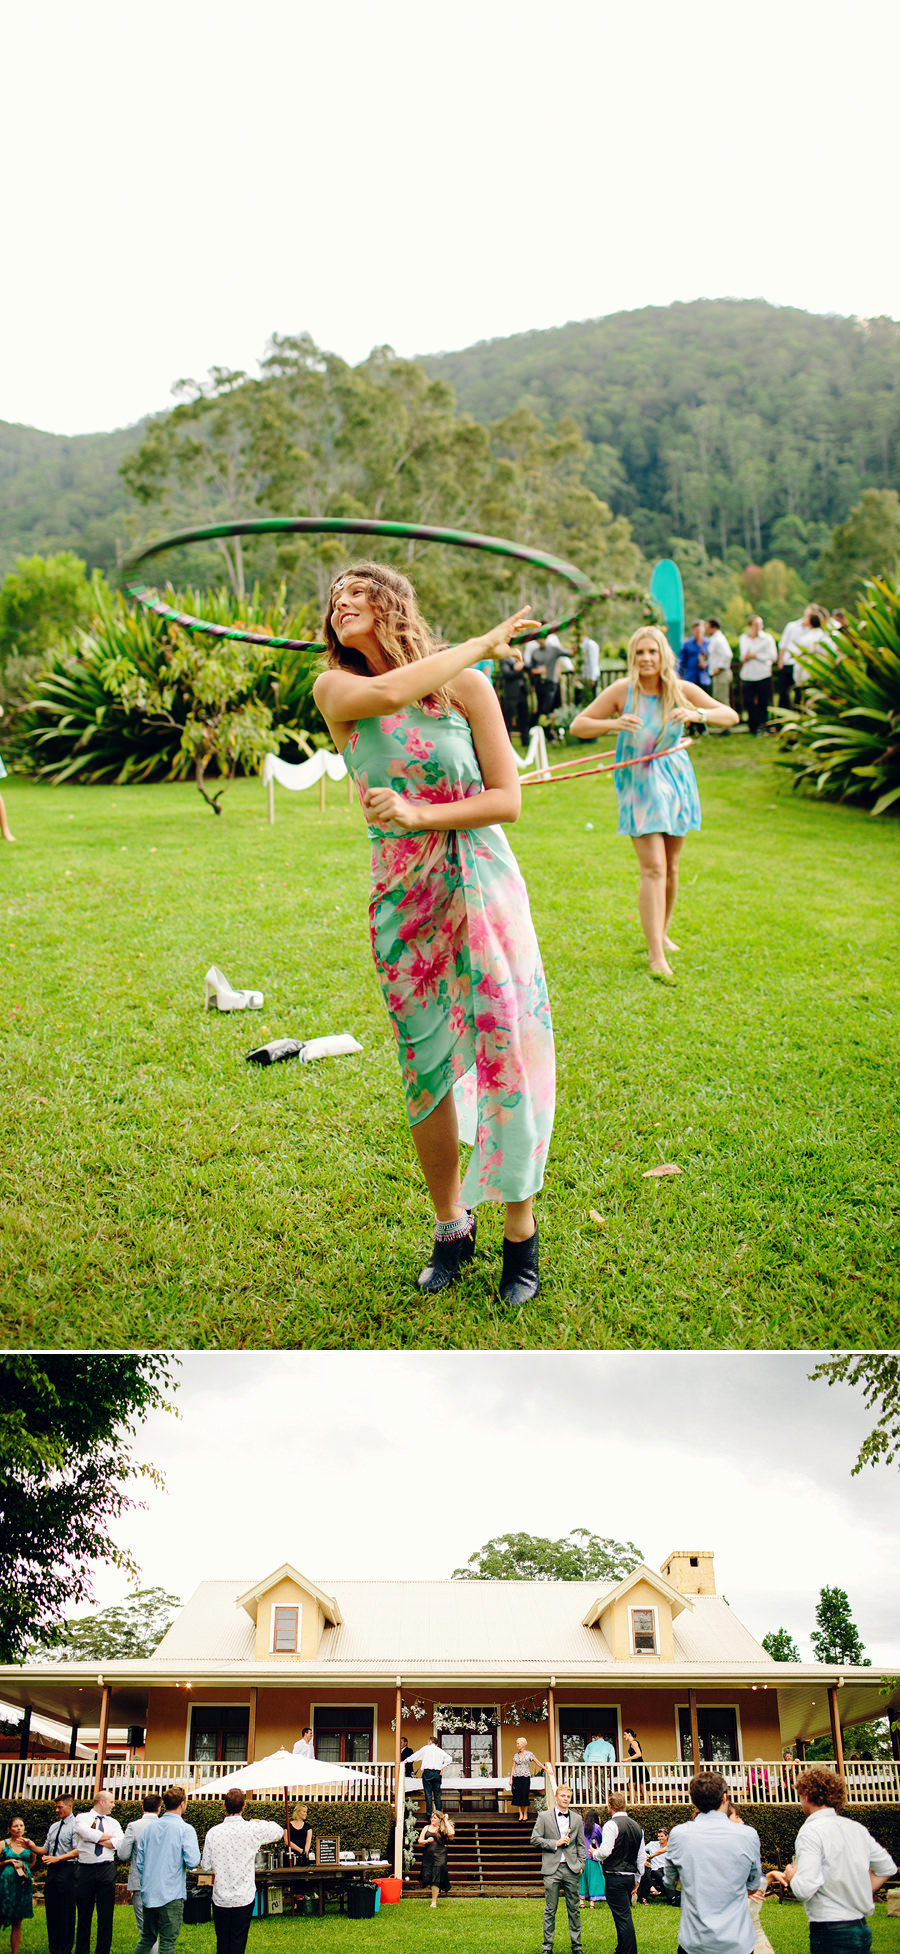 Fun Wedding Photography: Lawn Games